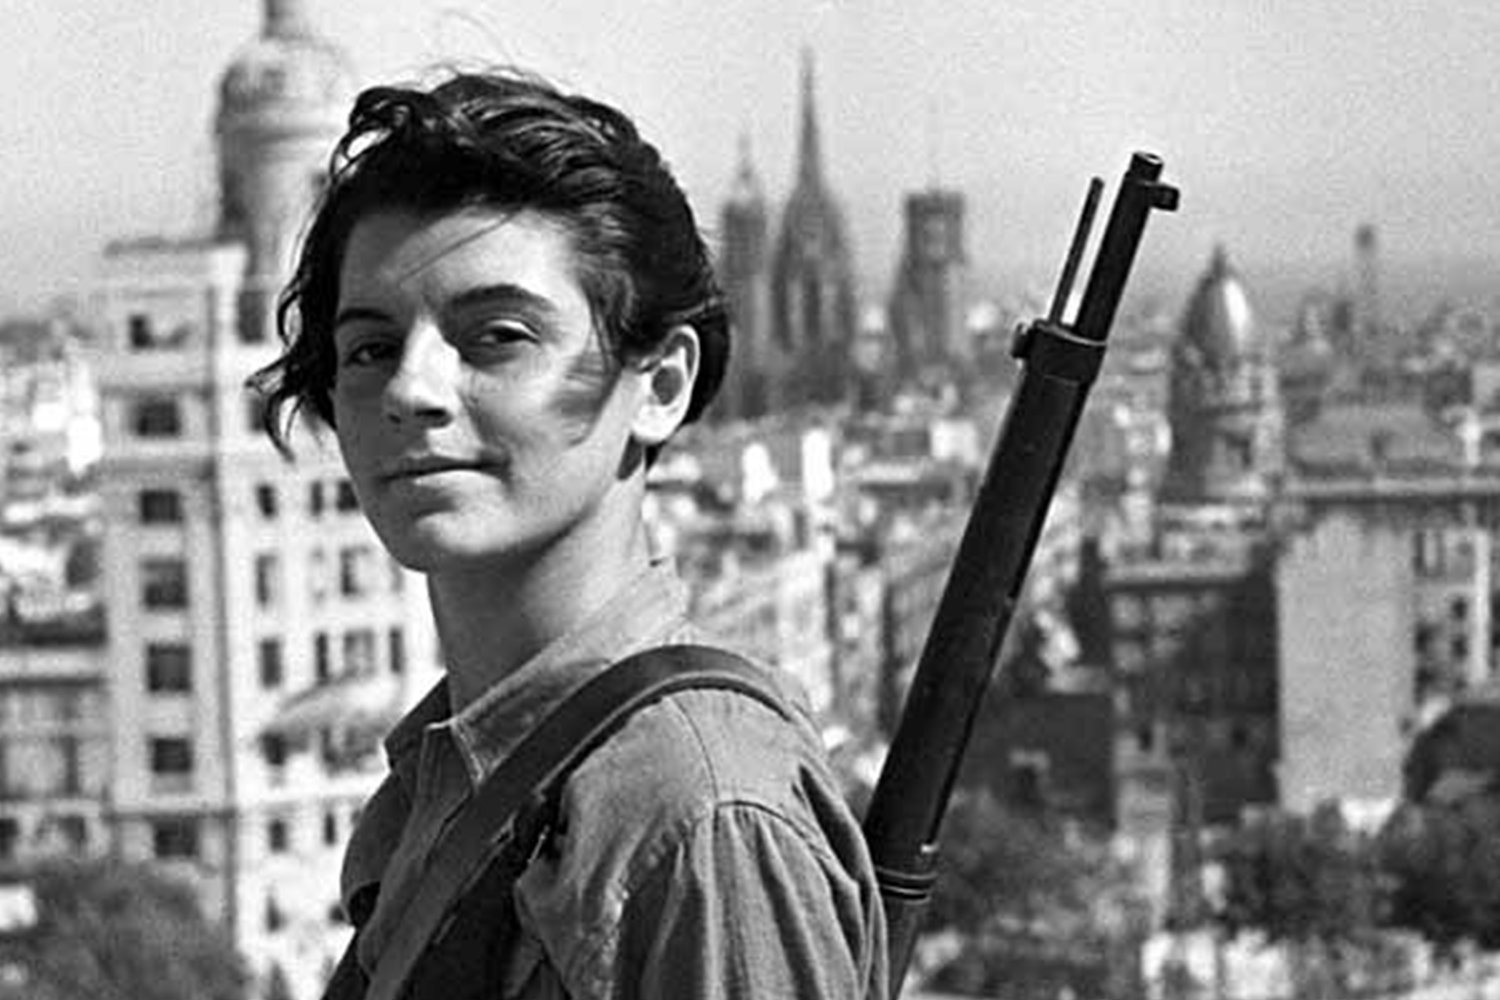 Marina Ginesta, a 17-year-old communist militant, overlooking Barcelona during the Spanish Civil War, 1936